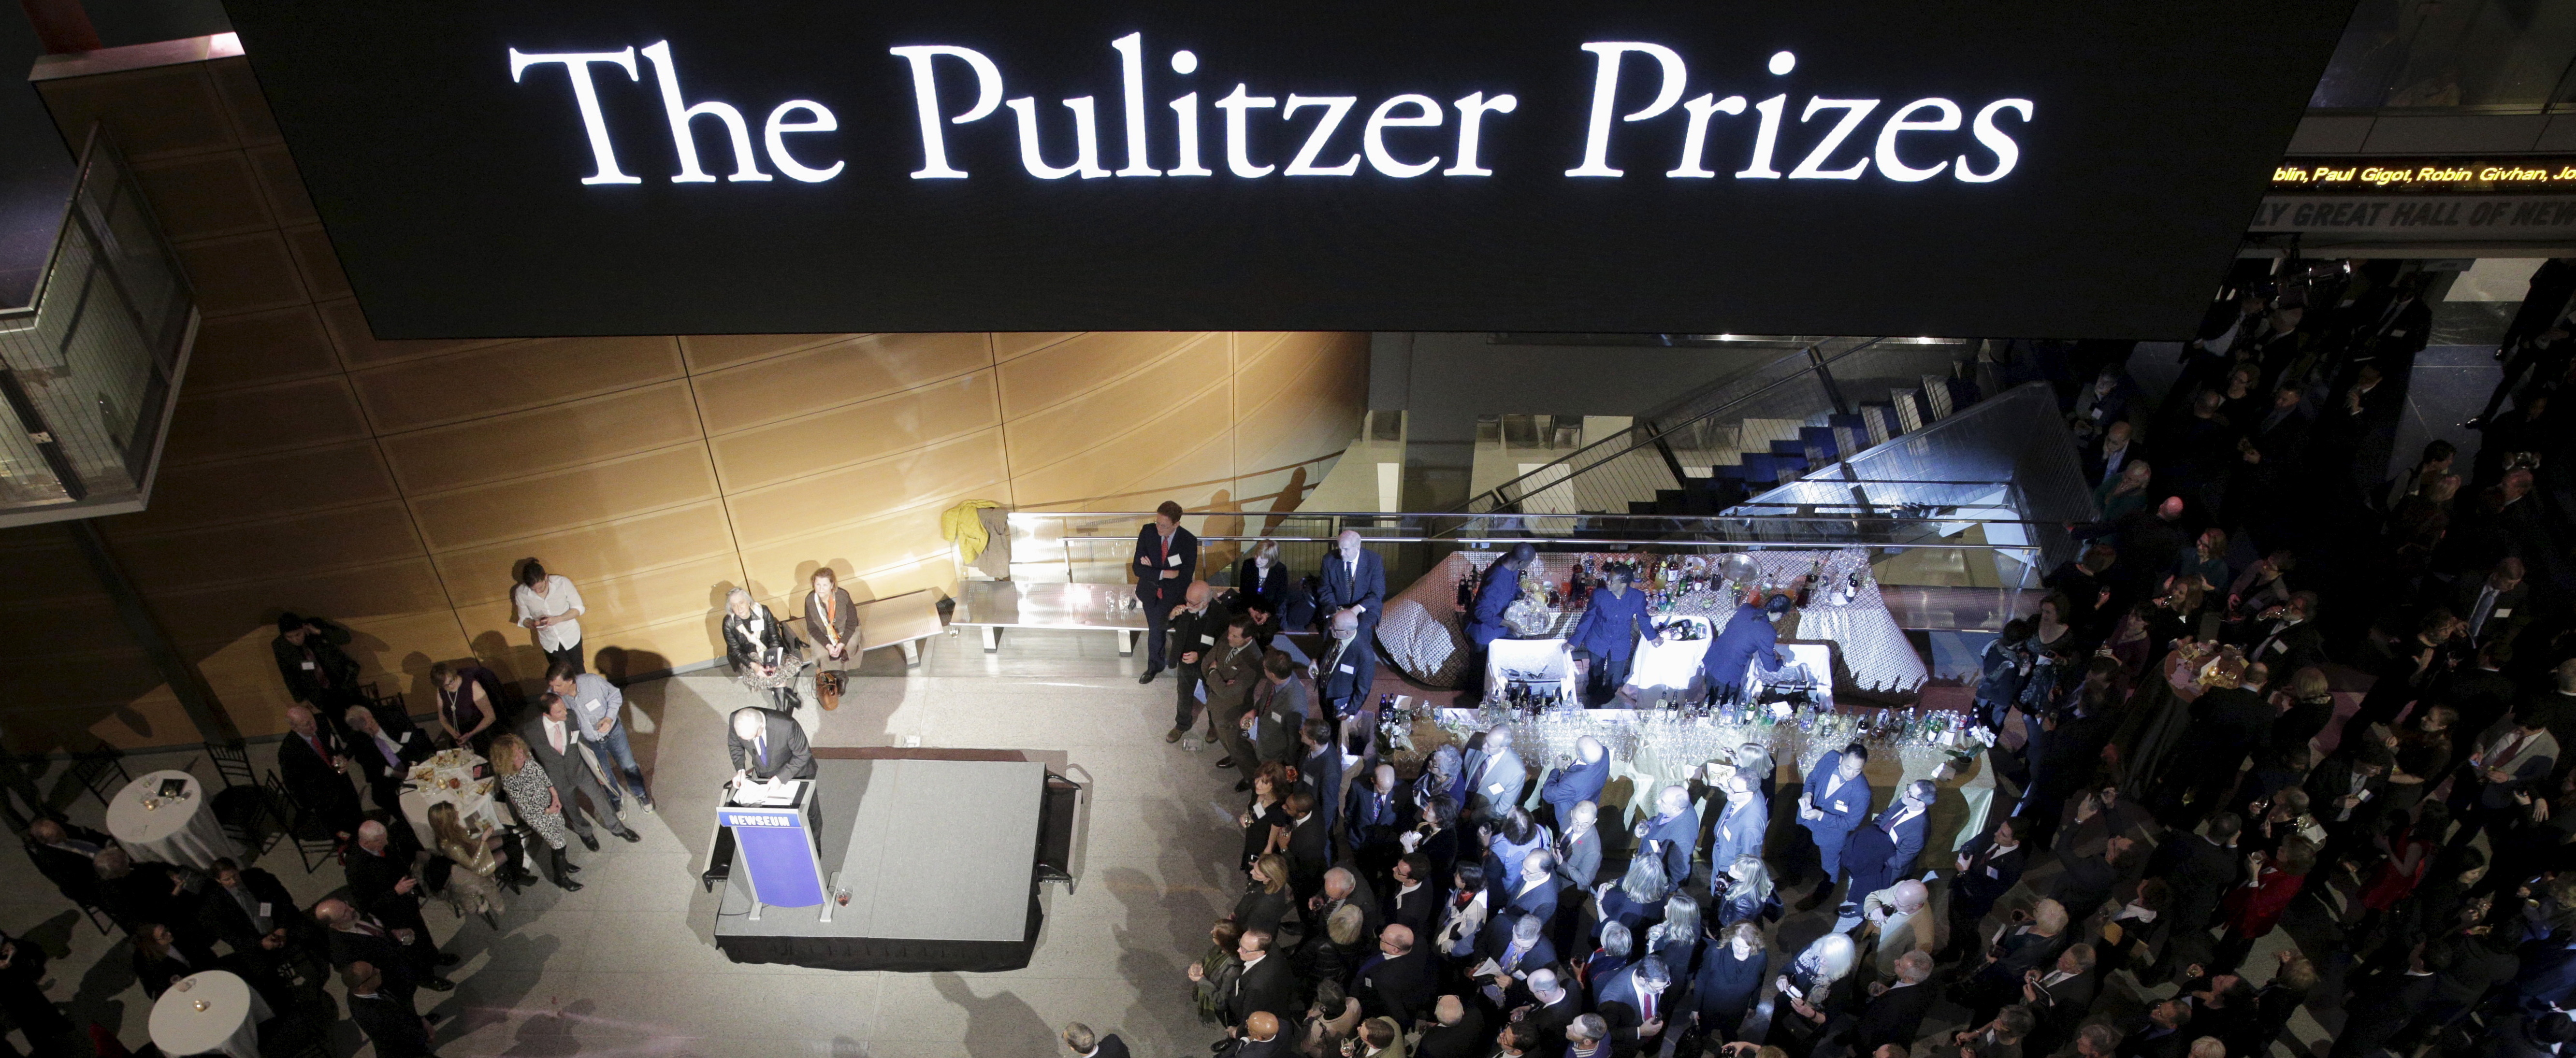 Flashback: WaPo, NYT Awarded Pulitzer Prizes For Trump-Russia Collusion Reports